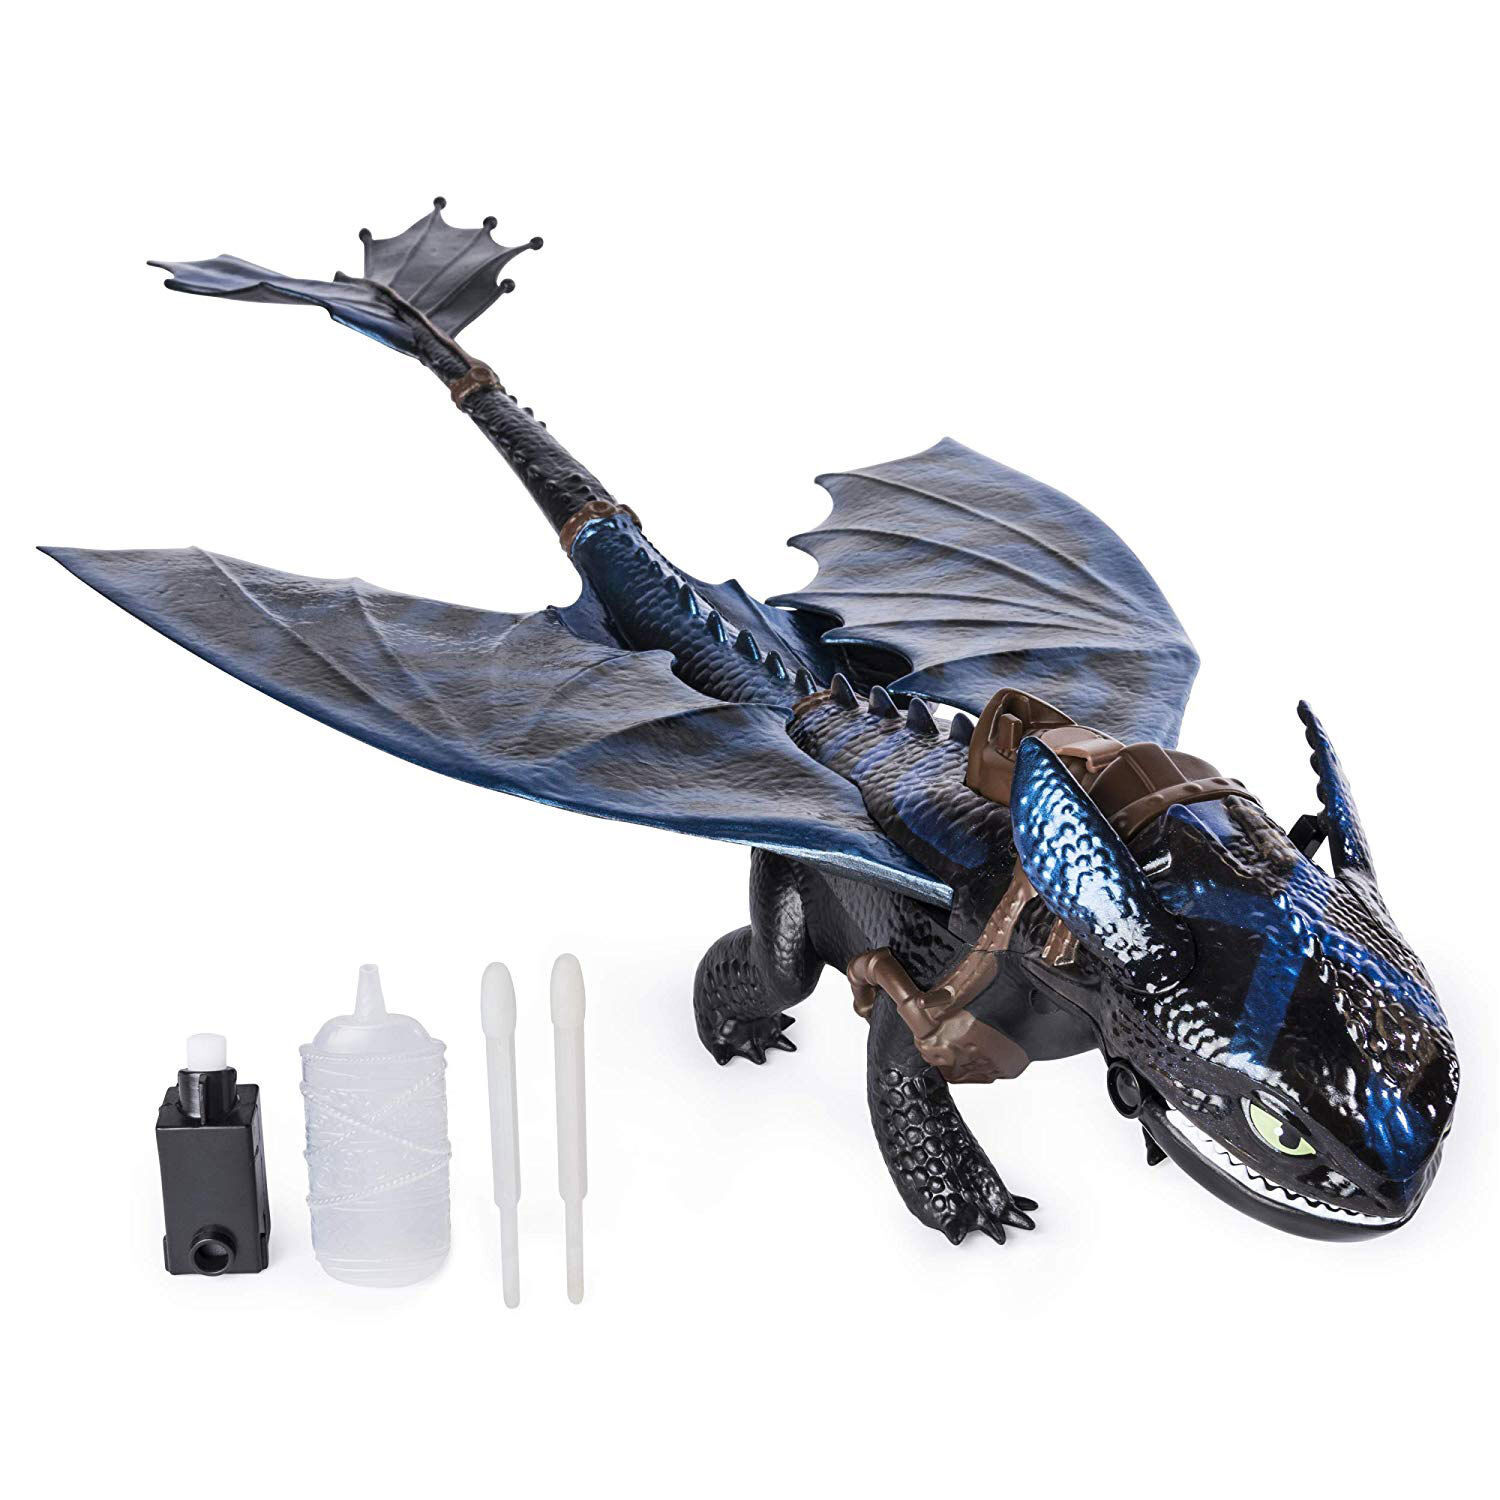 How To Train Your Dragon The Hidden World - Giant Fire Breathing Toothless